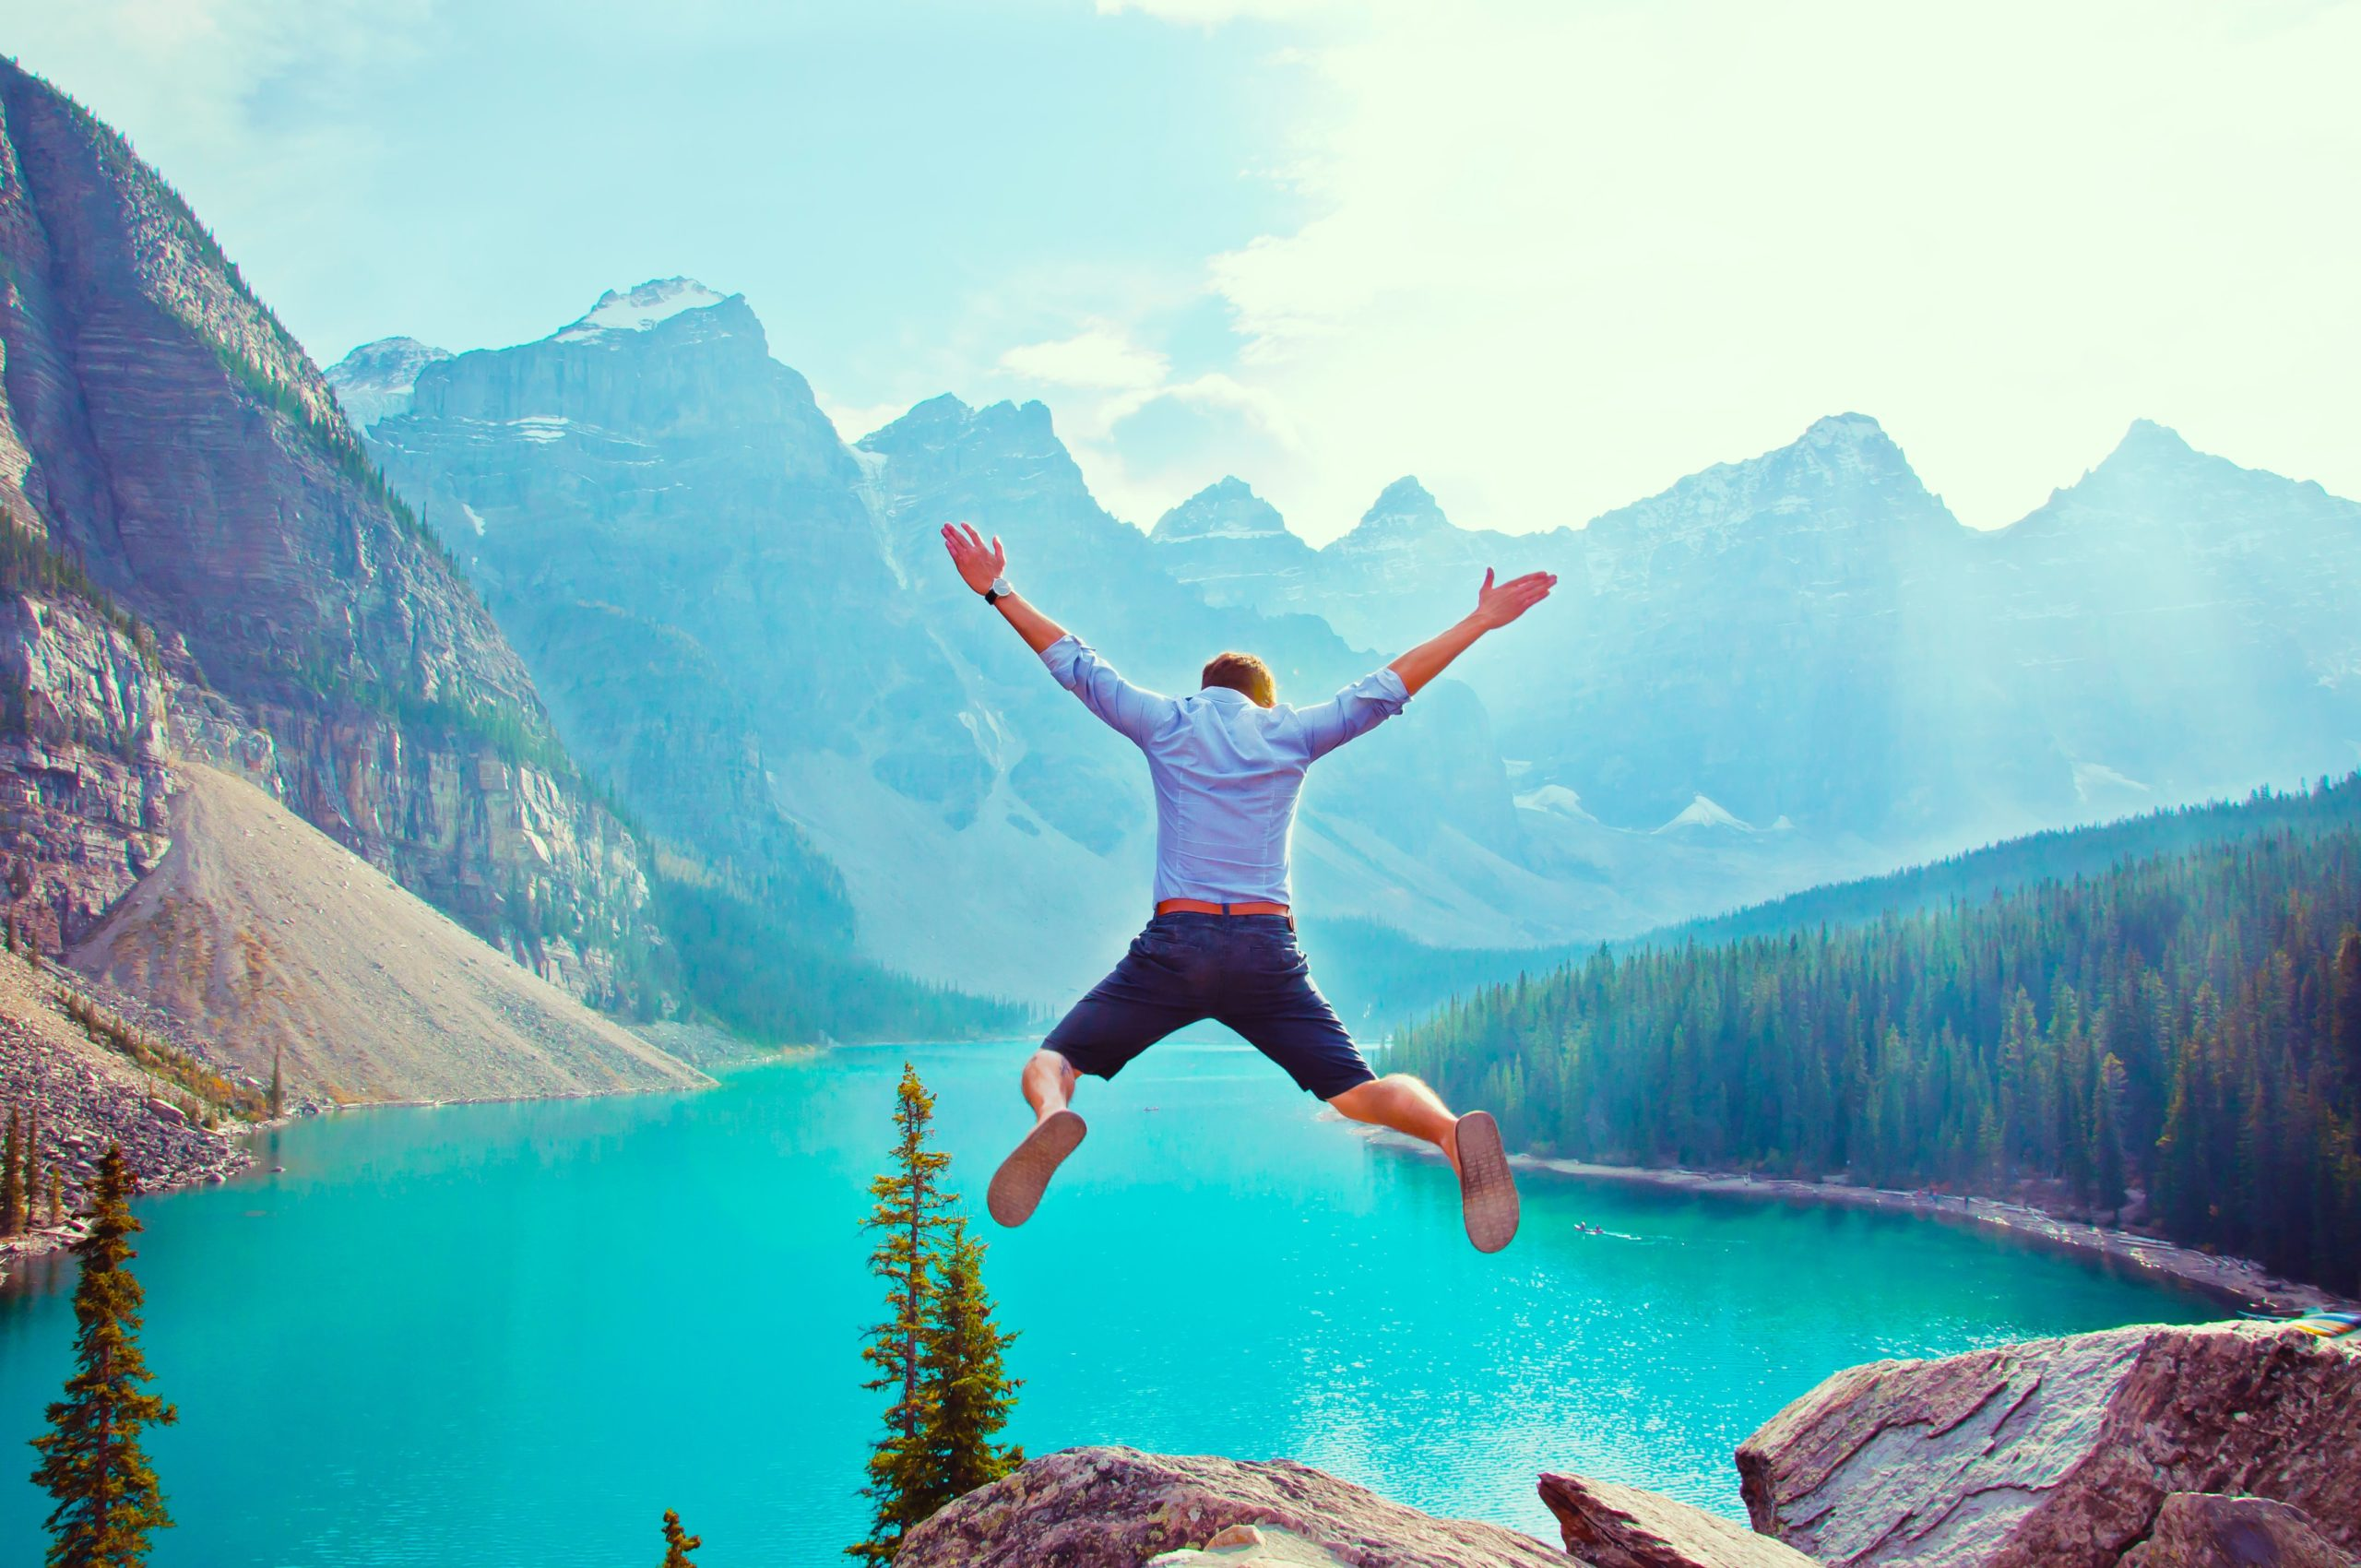 photo of man about to jump from cliff